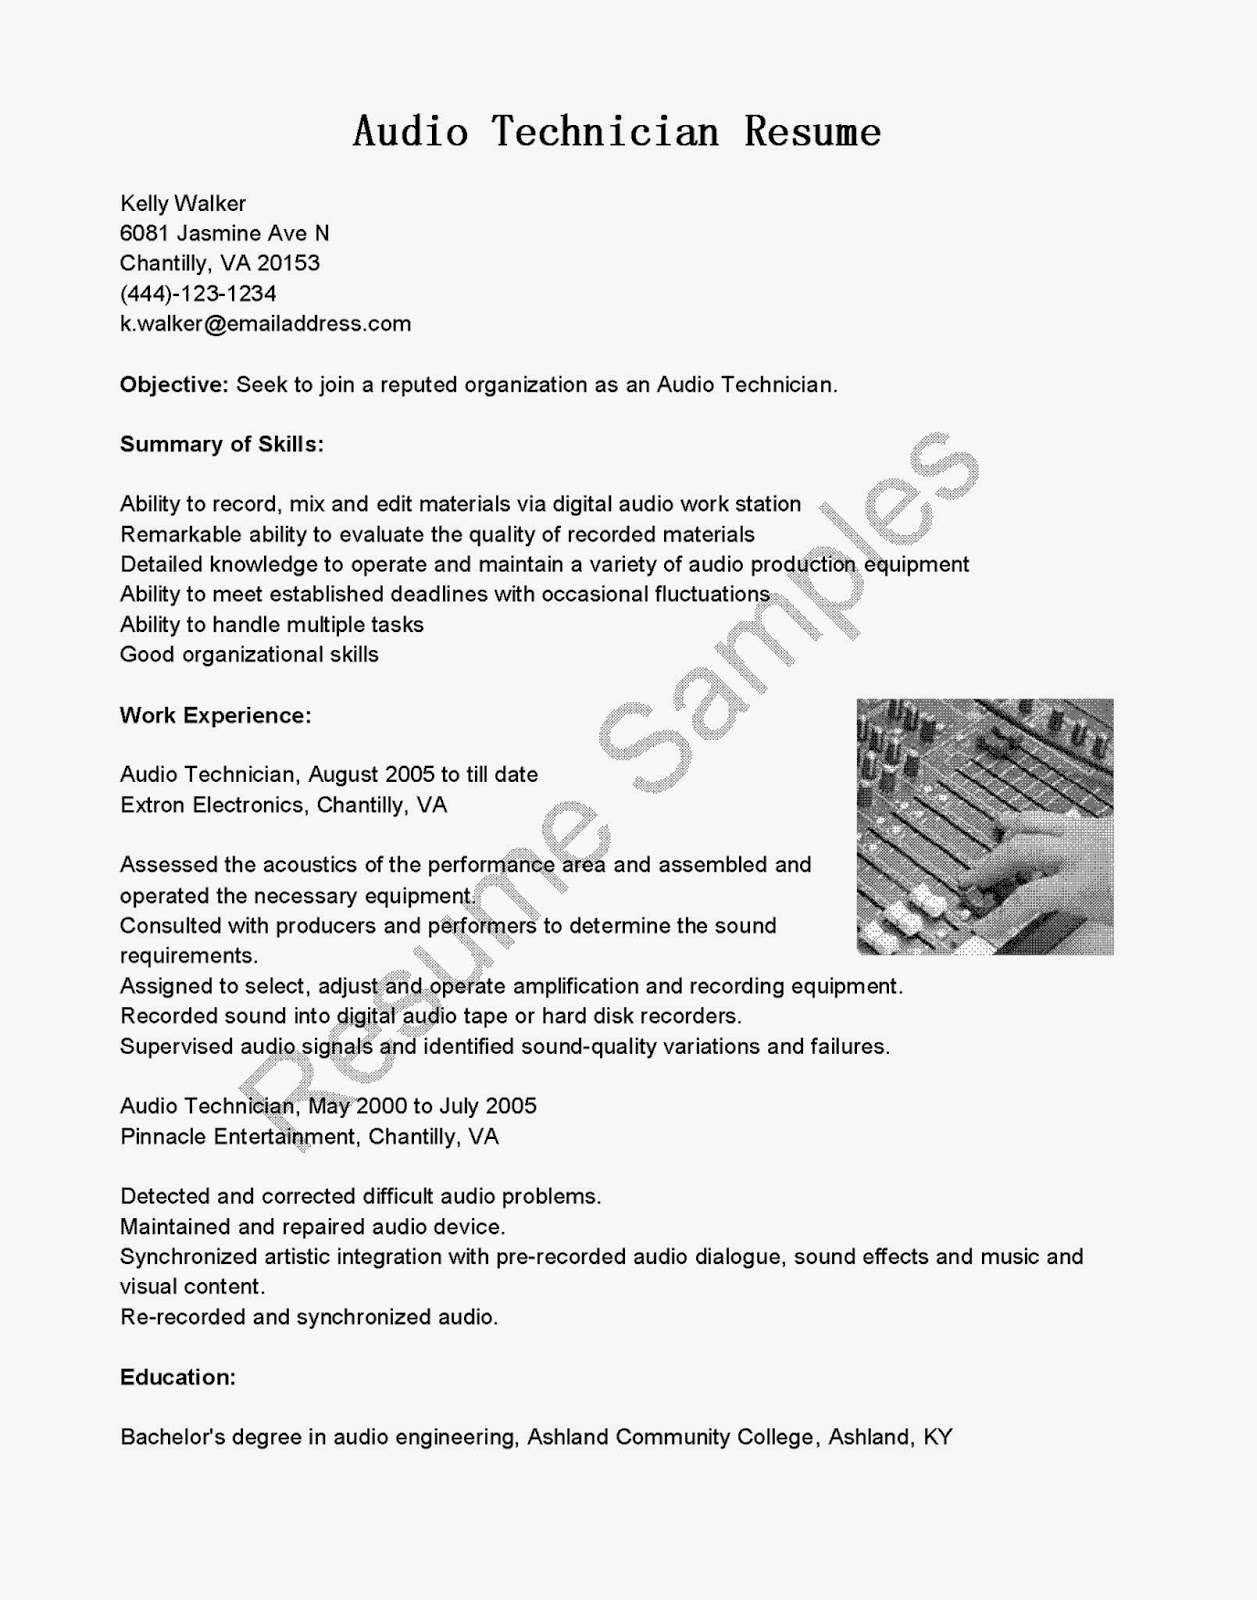 Resume Virginia Tech Resume Samples Audio Technician Resume Sample